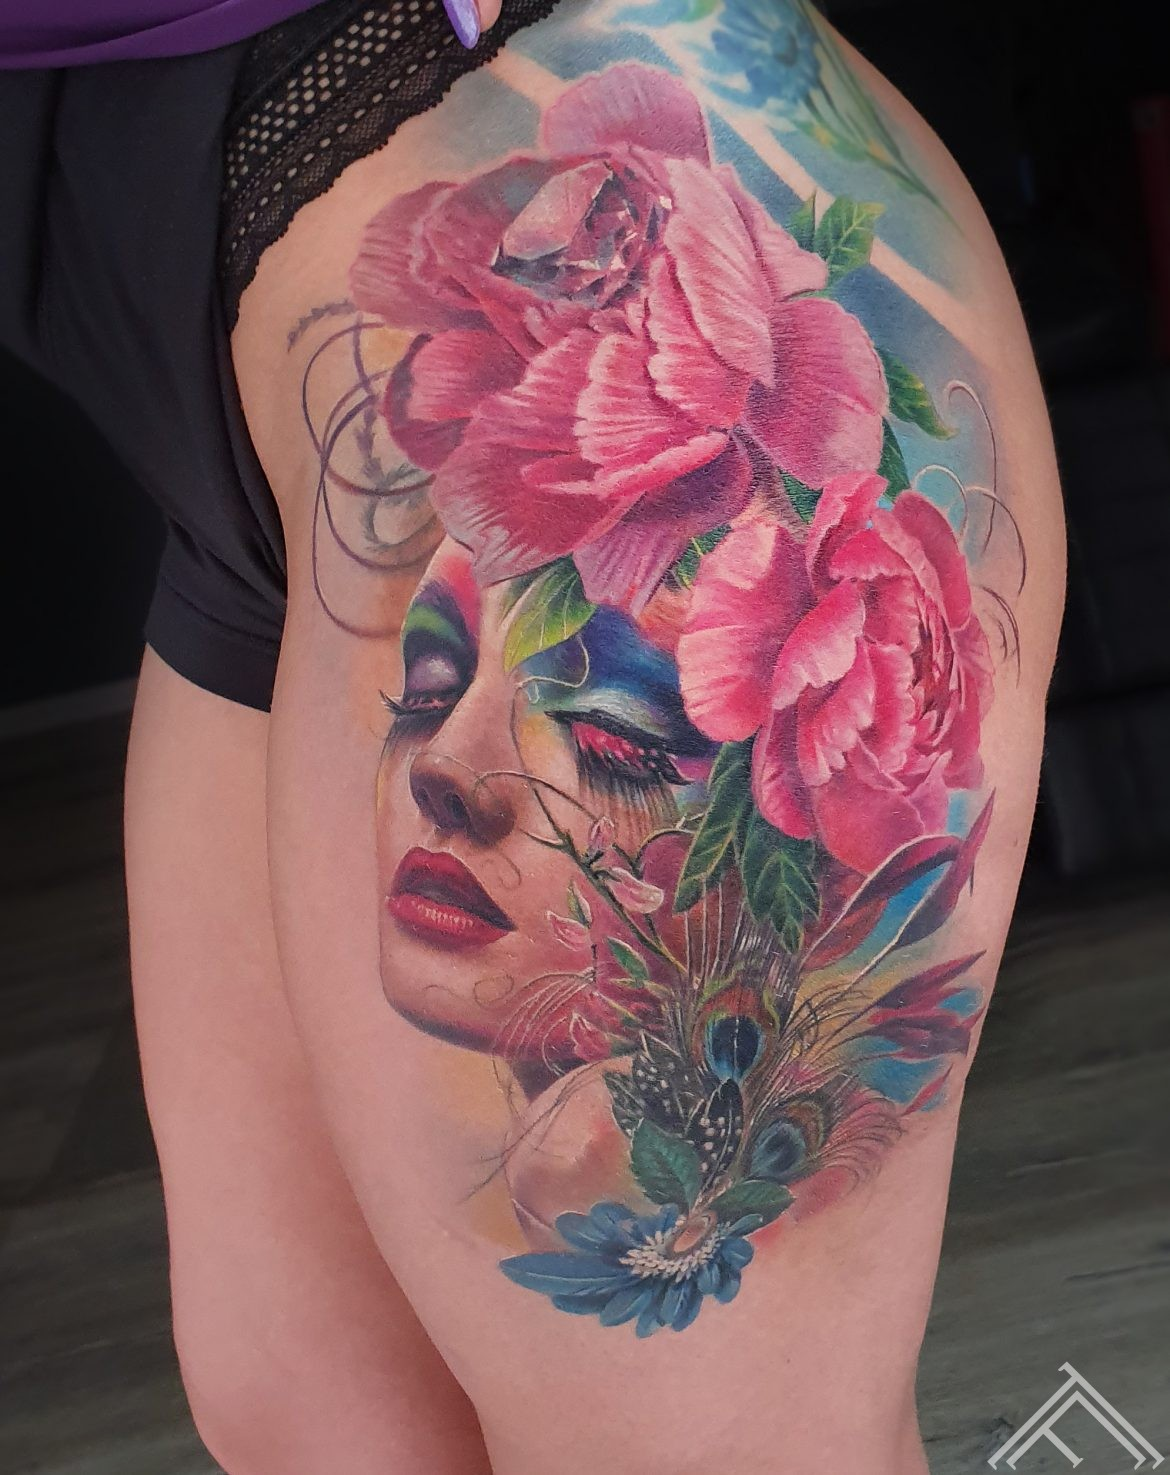 woman-portrait-custom-art-fantasy-feathers-flowers-peony-beauty-tattoo-tattoofrequency-marispavlo-rigatattoo-pukuzirnis-peonijas-tetovejums-diamond-dimants-m.lapa